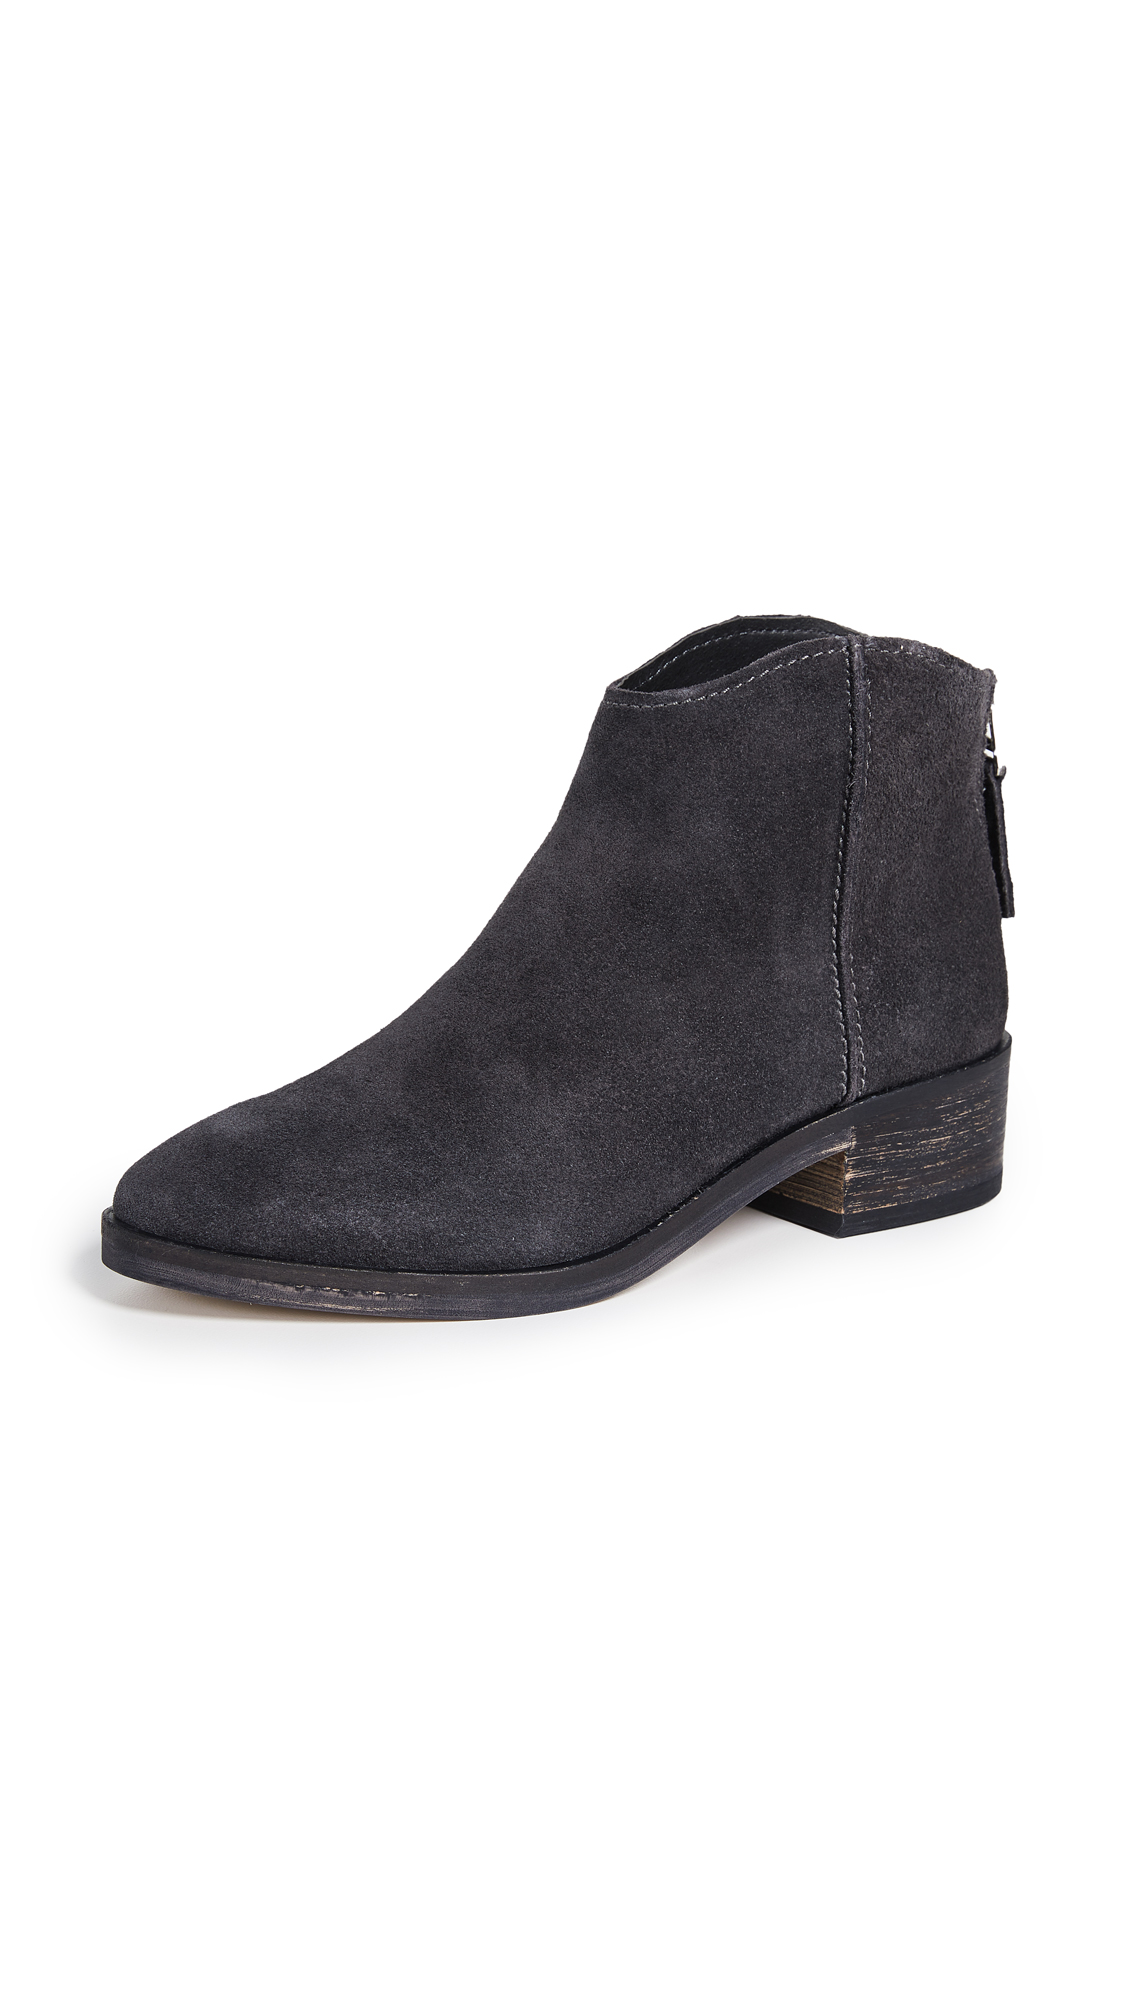 Dolce Vita Tucker Booties - Anthracite